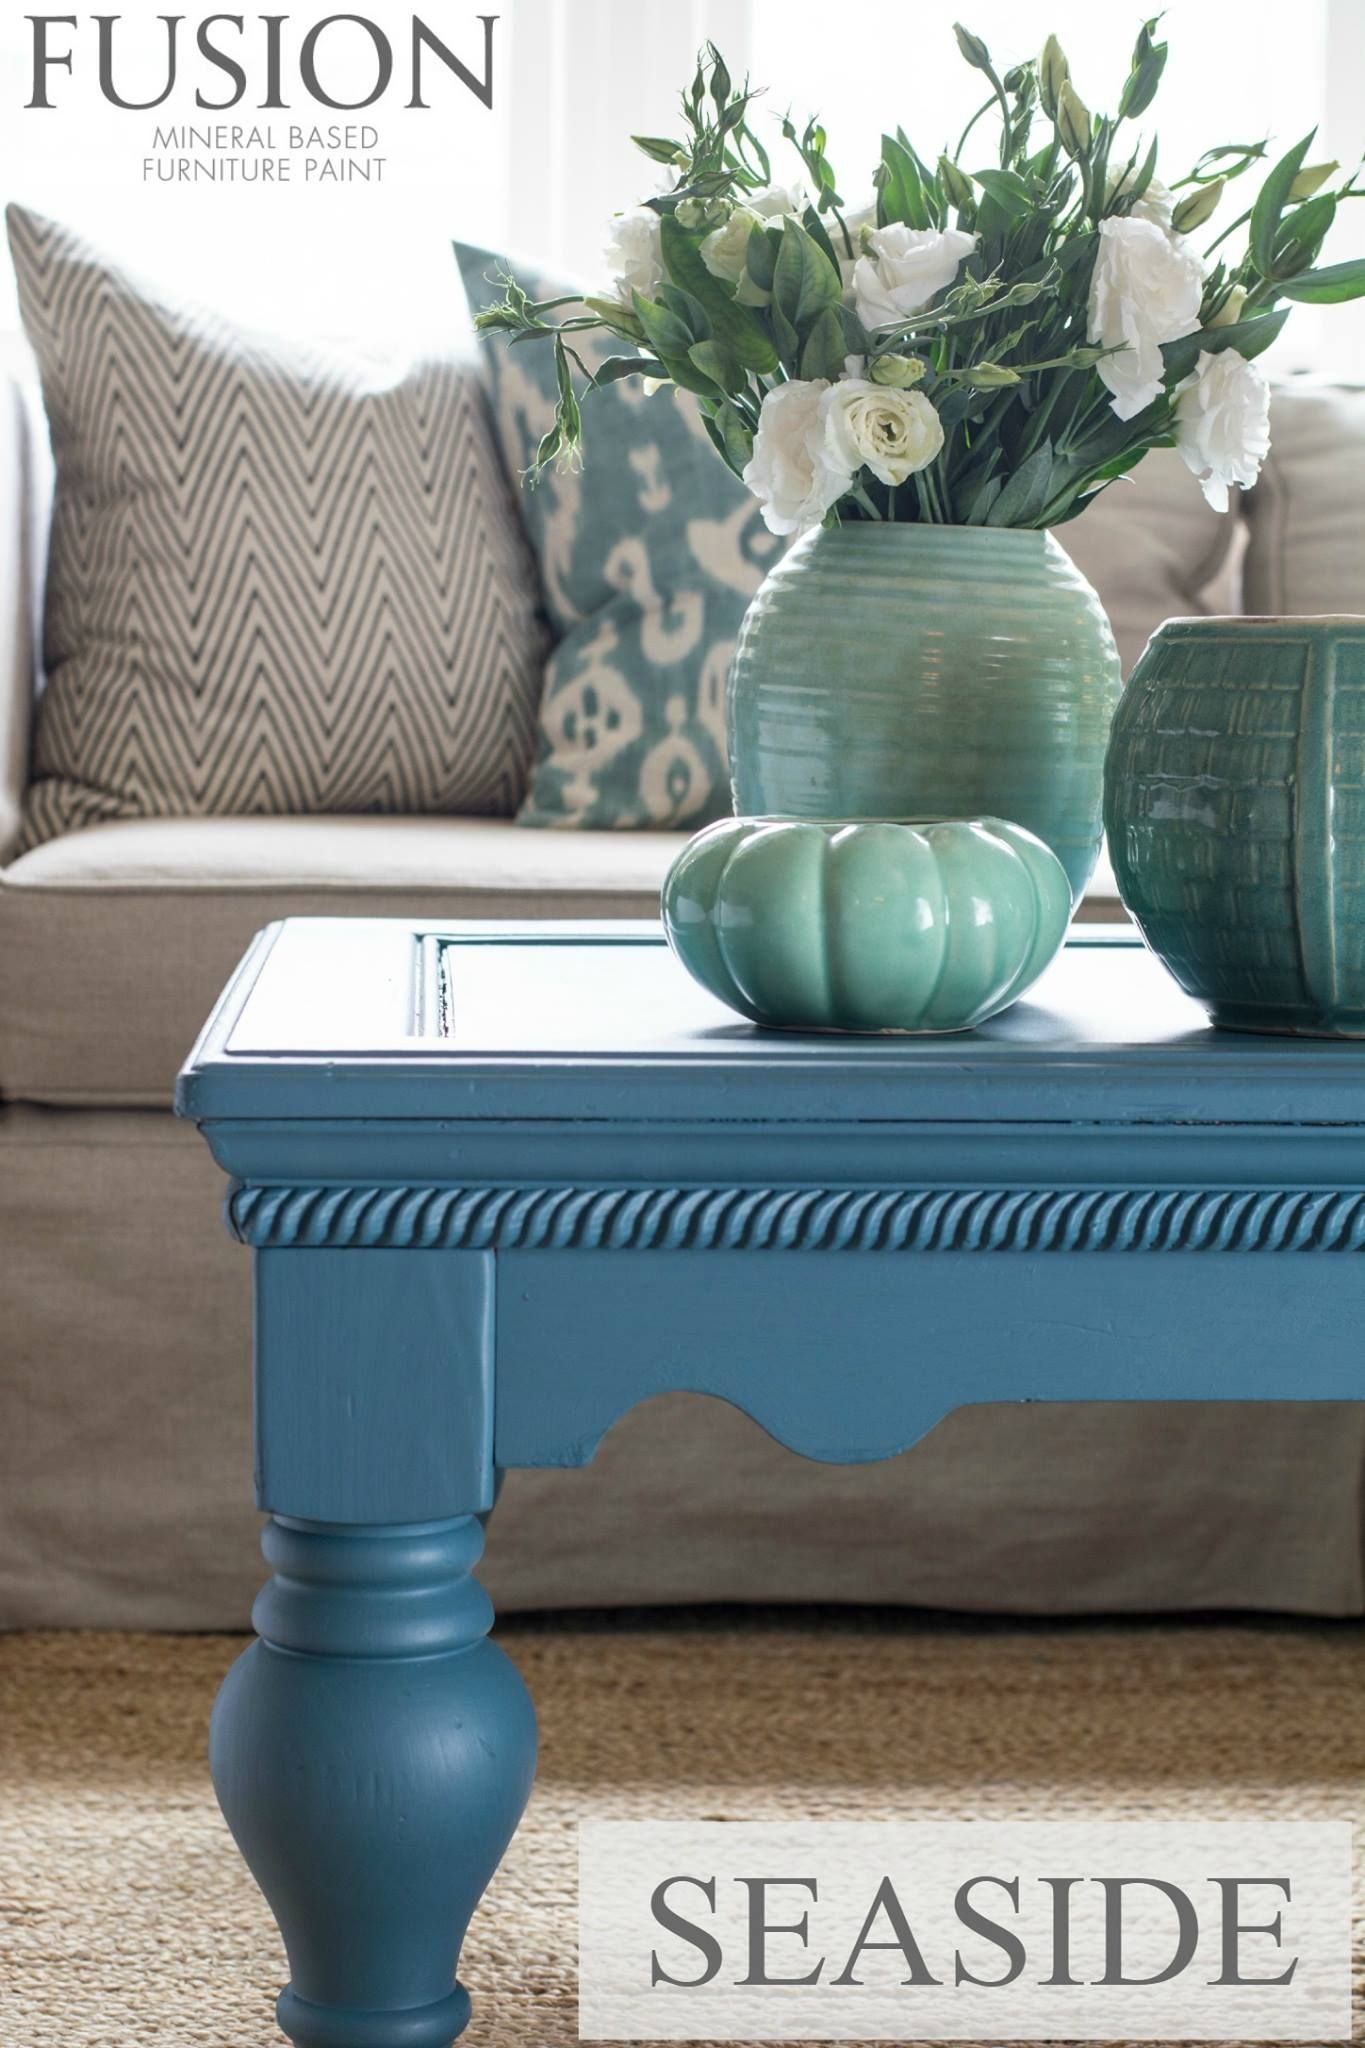 Seaside Is The Perfect Deep Coastal Blue From The Michael Penney Collection.